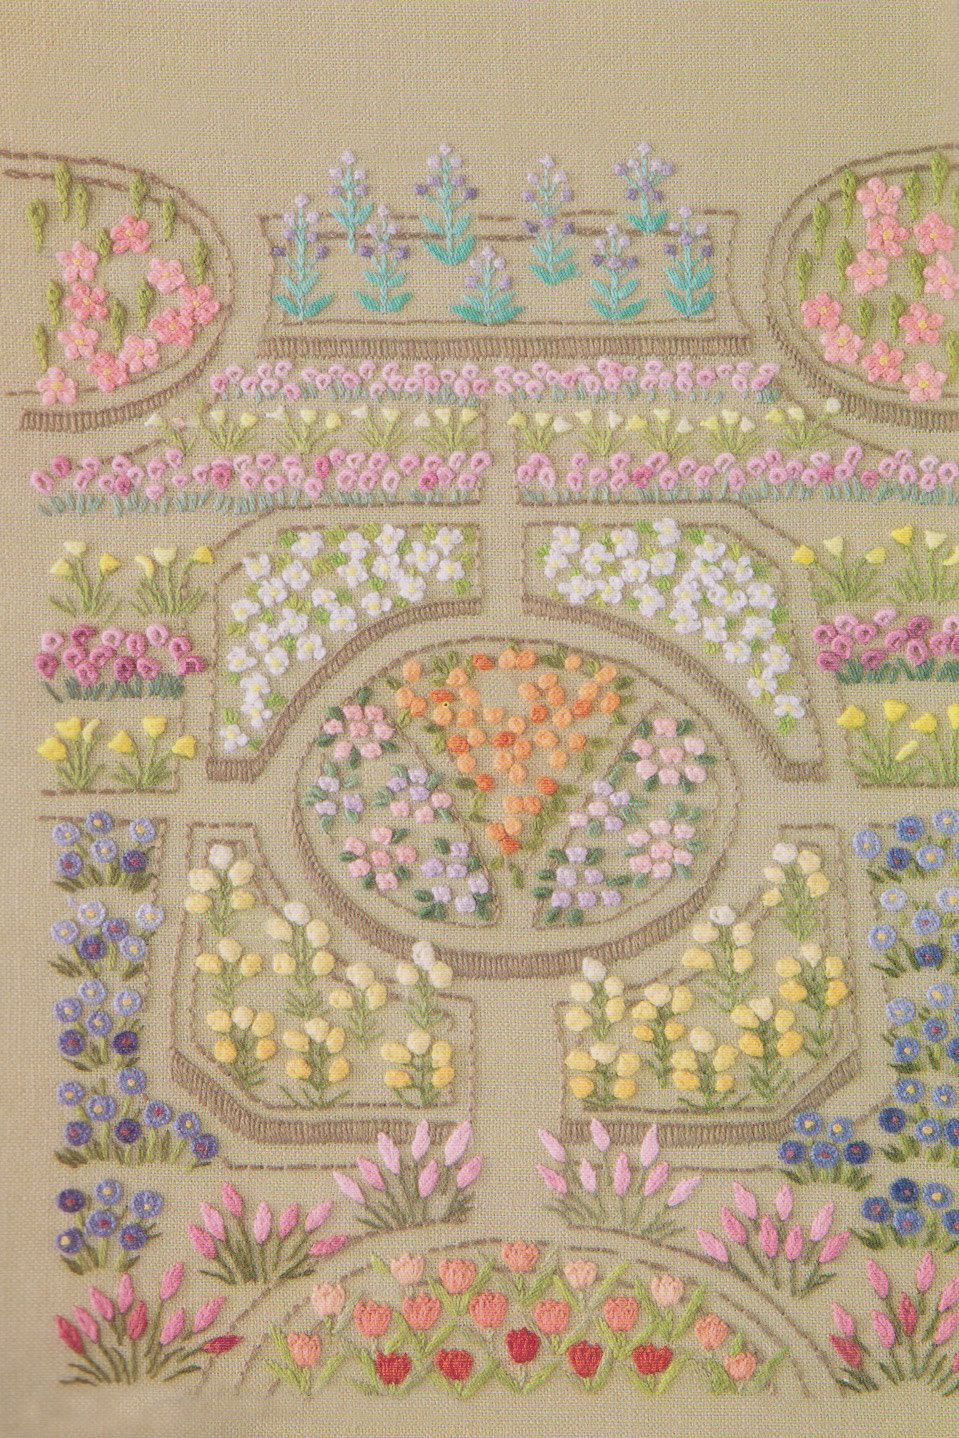 Pdf Pattern Tutorial Of My Garden Hand No14 Embroidery Stitch Come